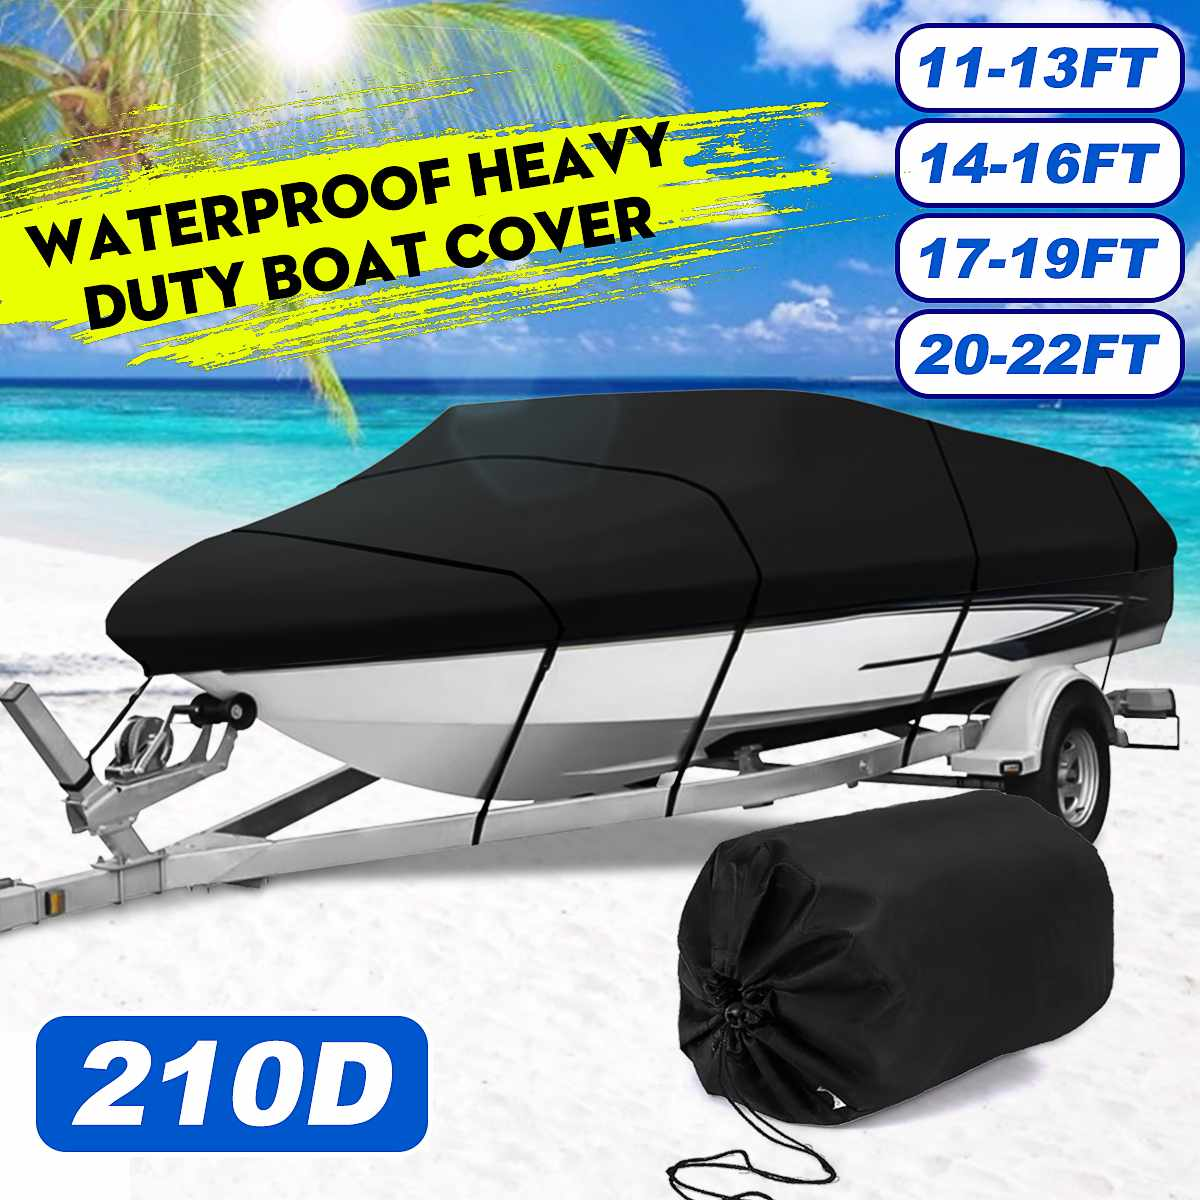 11-13ft 14-16ft 17-19ft 20-22ft 210D Marine Grade Boat Cover Sunproof Anti UV Premium Heavy Duty Trailerable Canvas Black